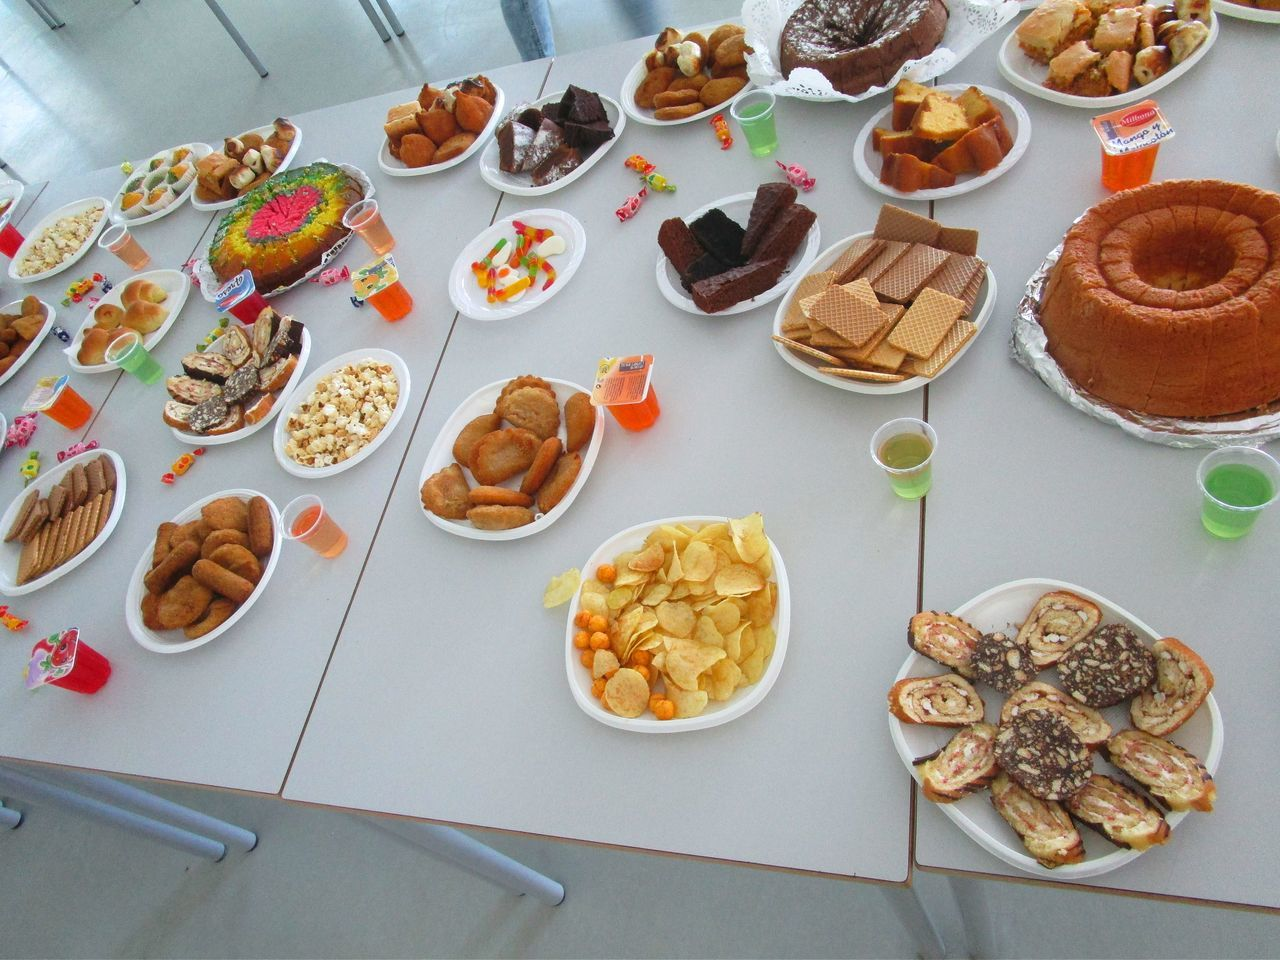 Beautiful stock photos of kuchen, food, high angle view, no people, freshness